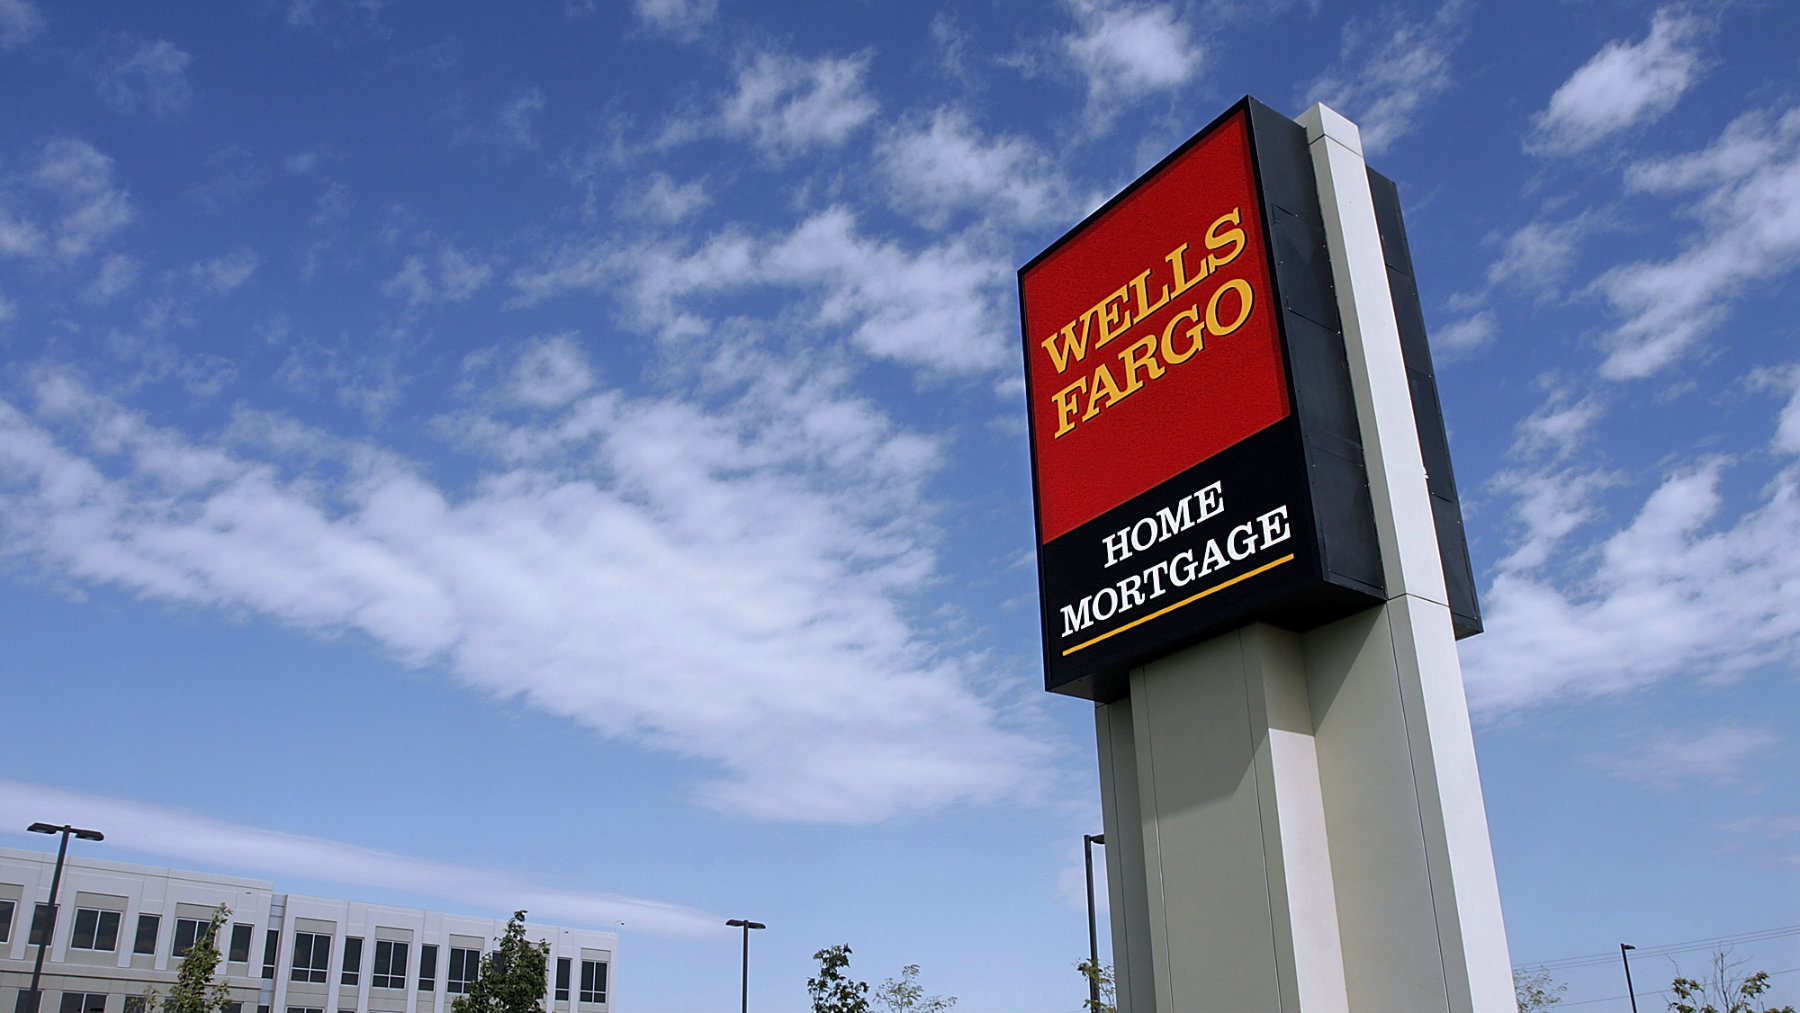 The Wells Fargo logo is displayed outside a home mortgage office in Springfield, Ill., Friday, Oct 3, 2008. A battle broke out for control of Wachovia Friday as Wells Fargo signed a $15.1 billion agreement to buy the Charlotte, N.C.-based bank. (AP Photo/Seth Perlman)